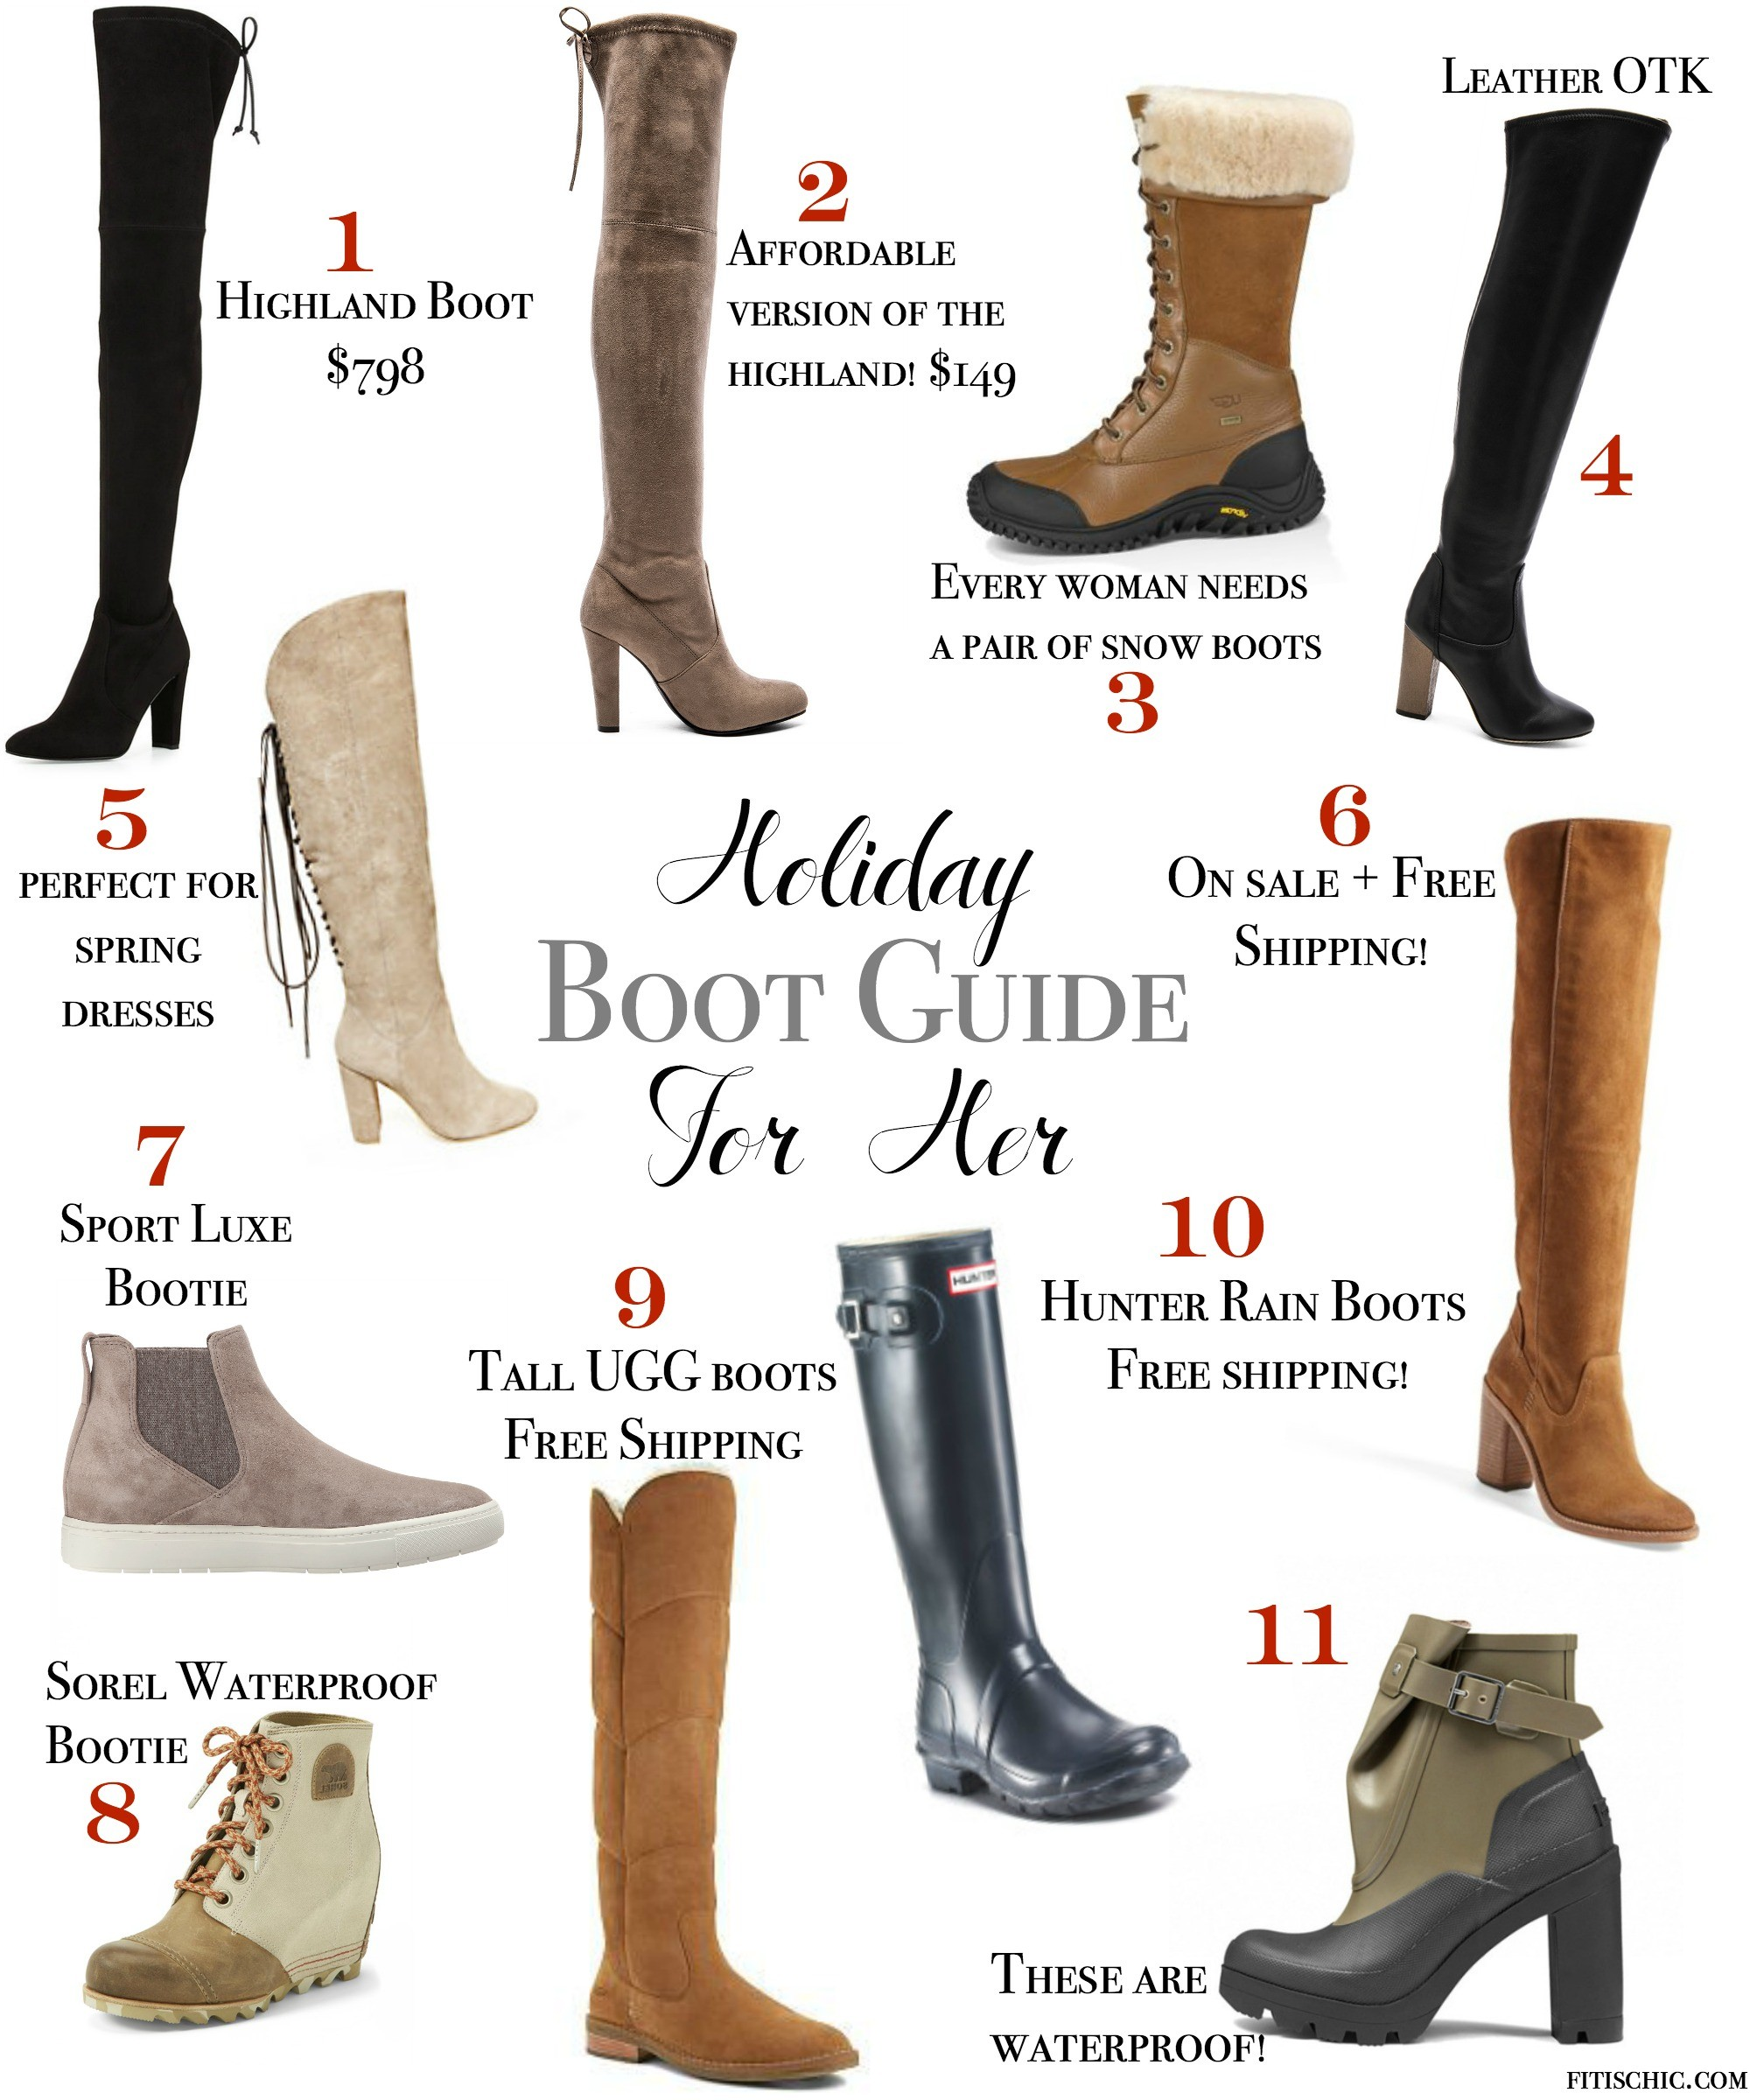 a6496d354fc Steve Madden Gorgeous Boot (His version of the Highland Boot  but much more  affordable!)